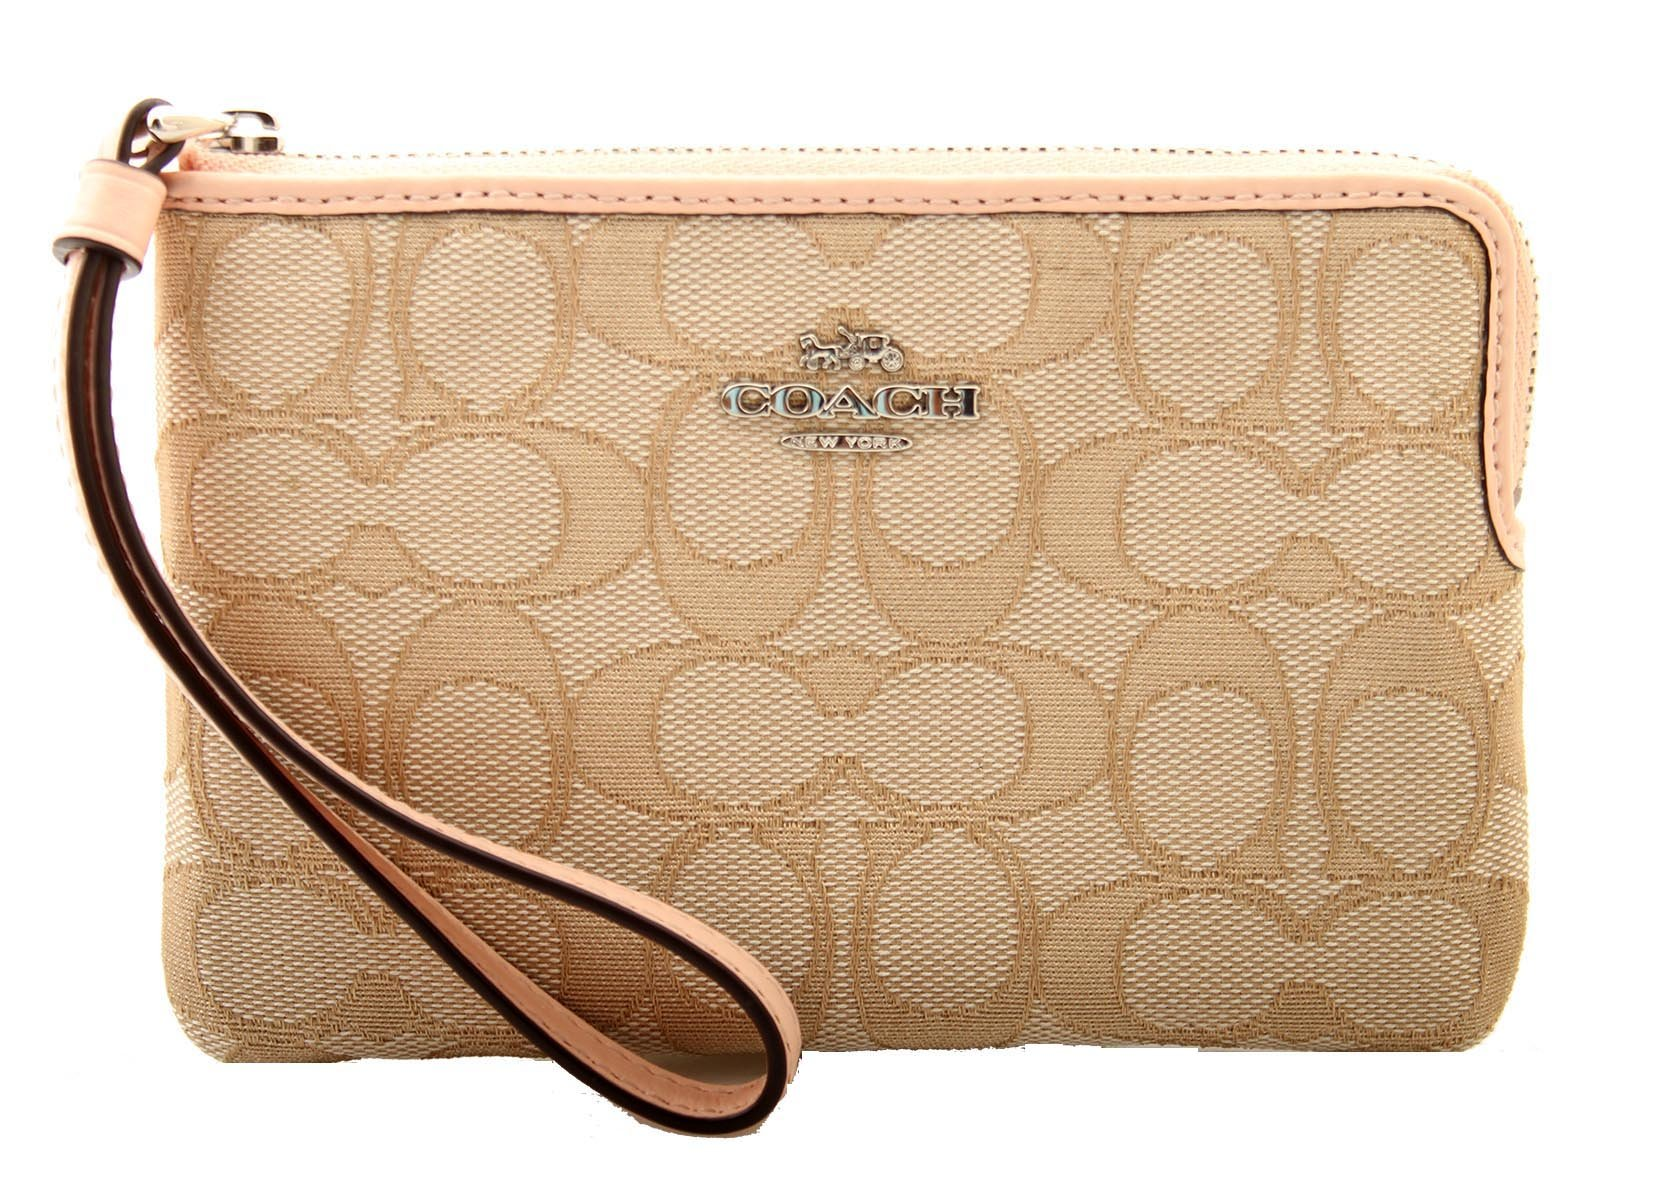 COACH Corner Zip Wristlet In Outline Signature